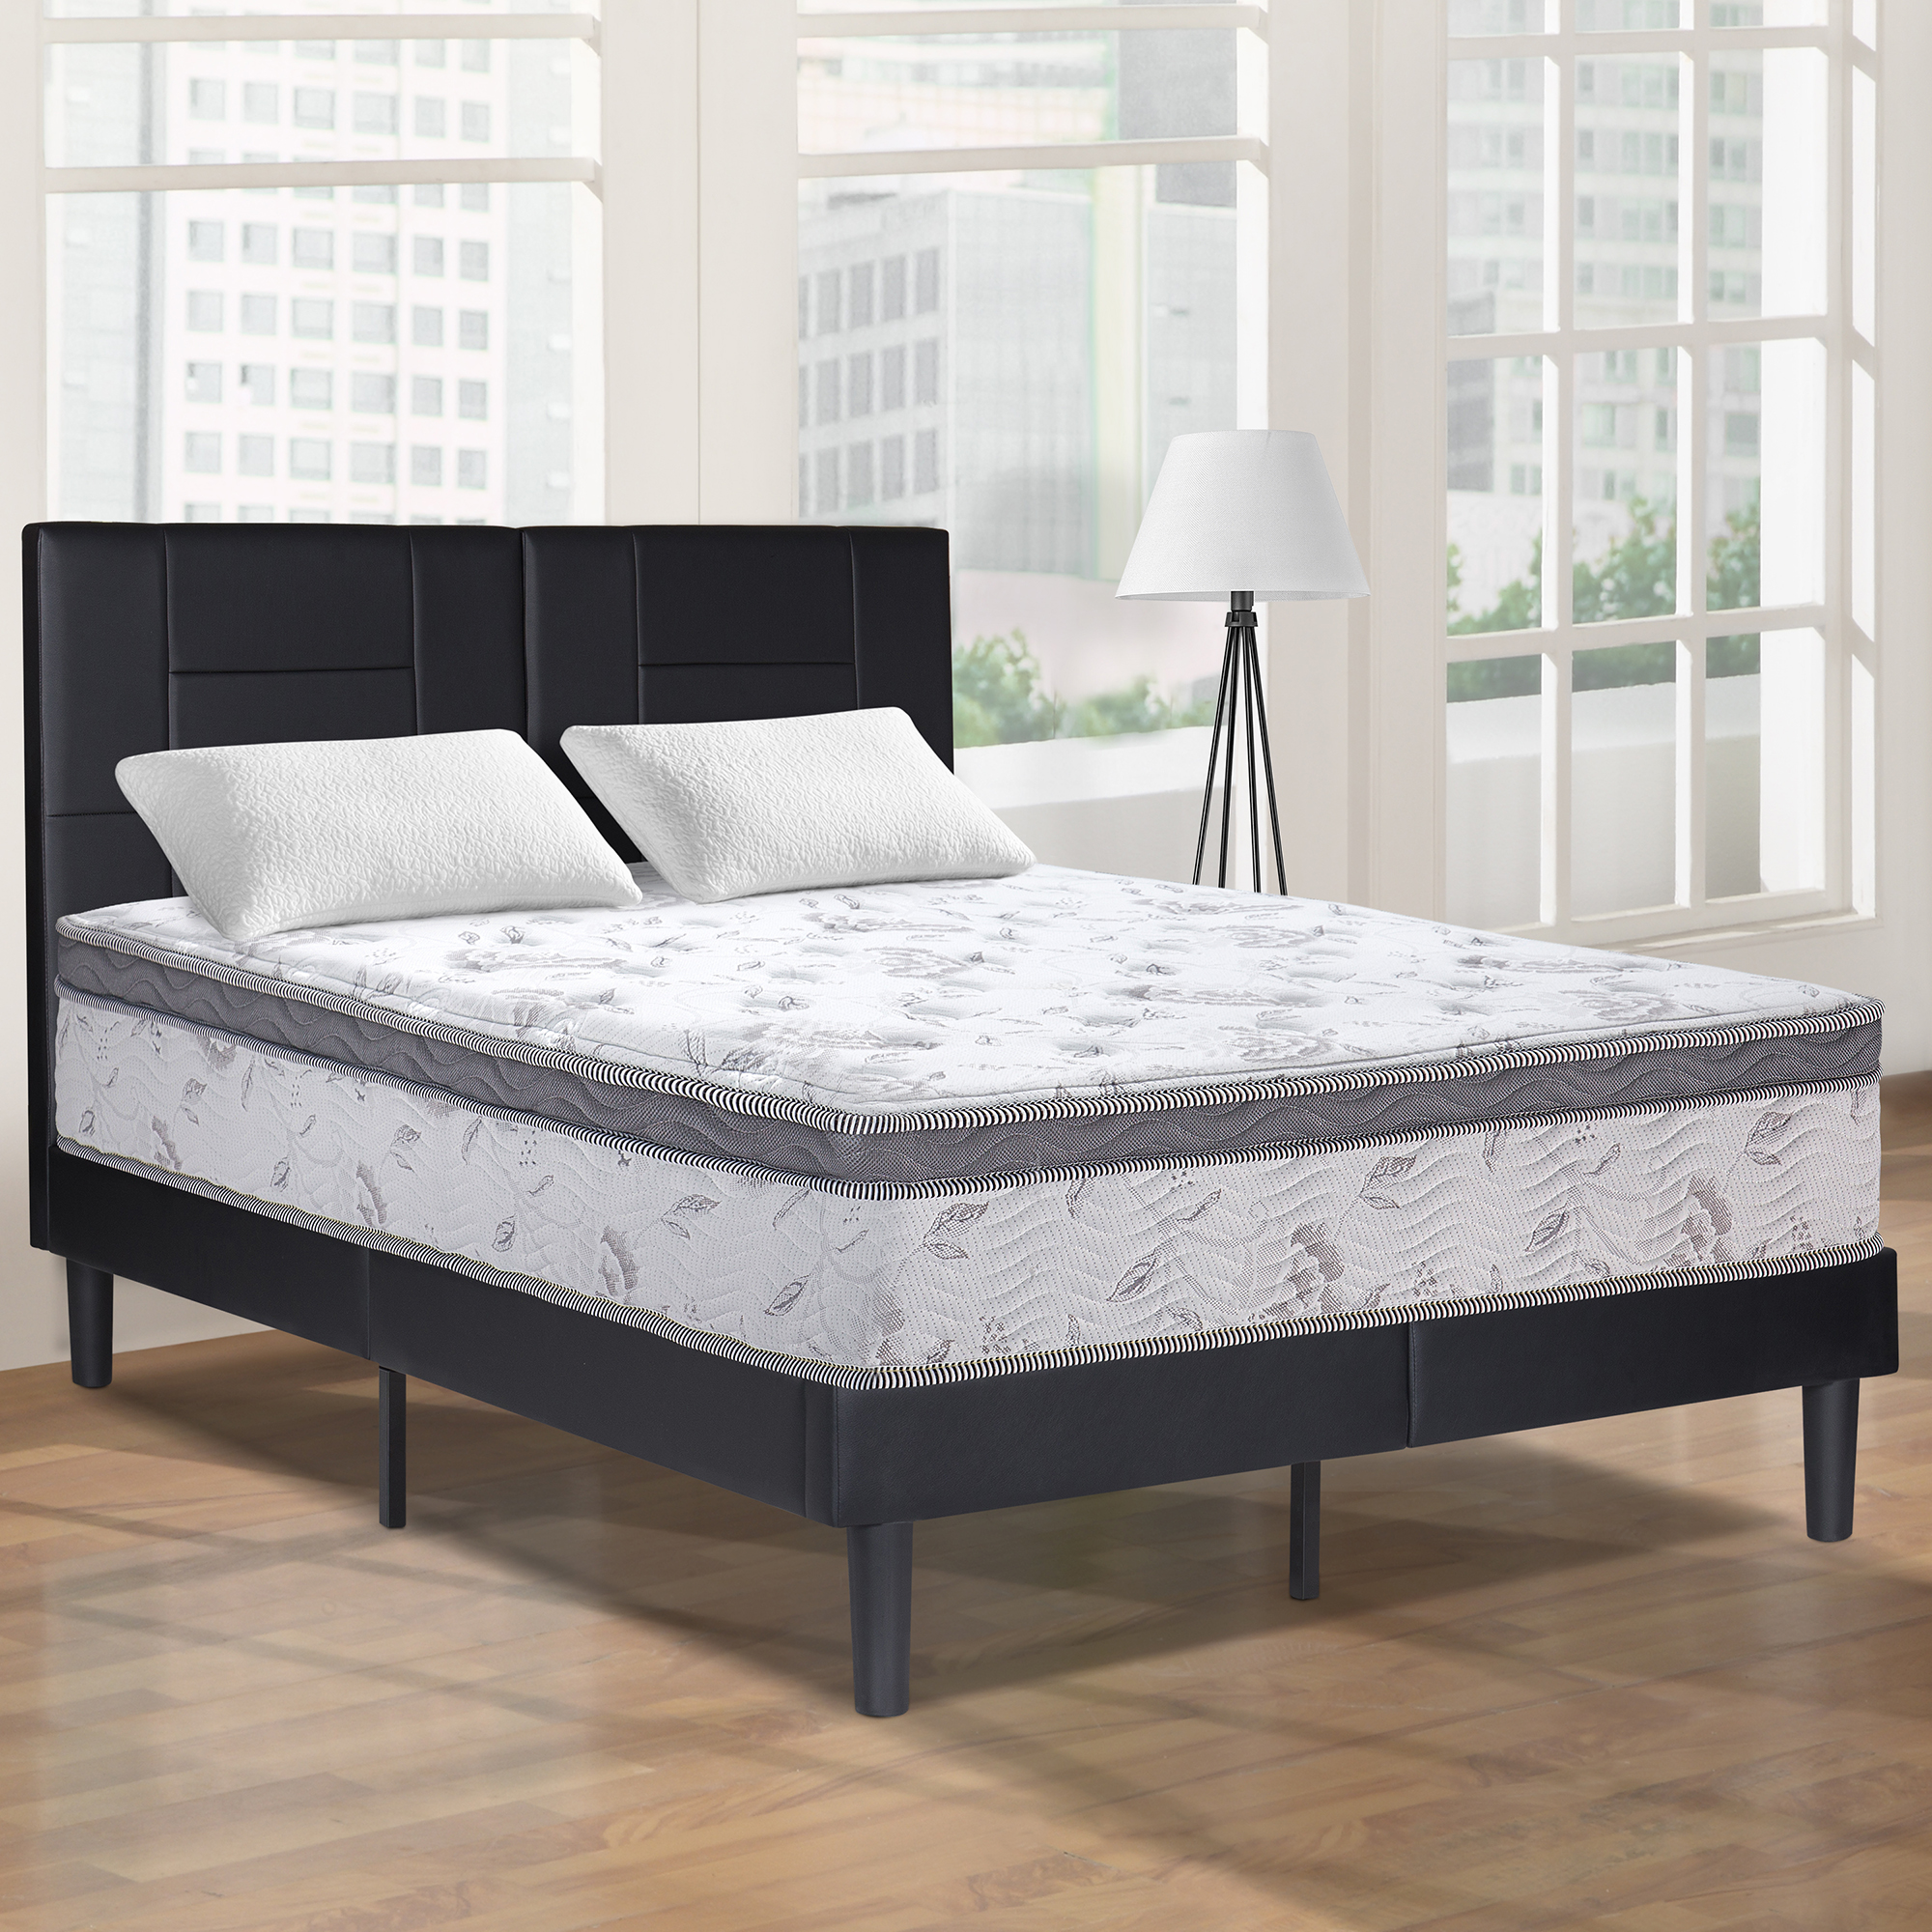 "GranRest 12"" Pegasus Euro Top Pocket Spring Hybrid Mattress, King"